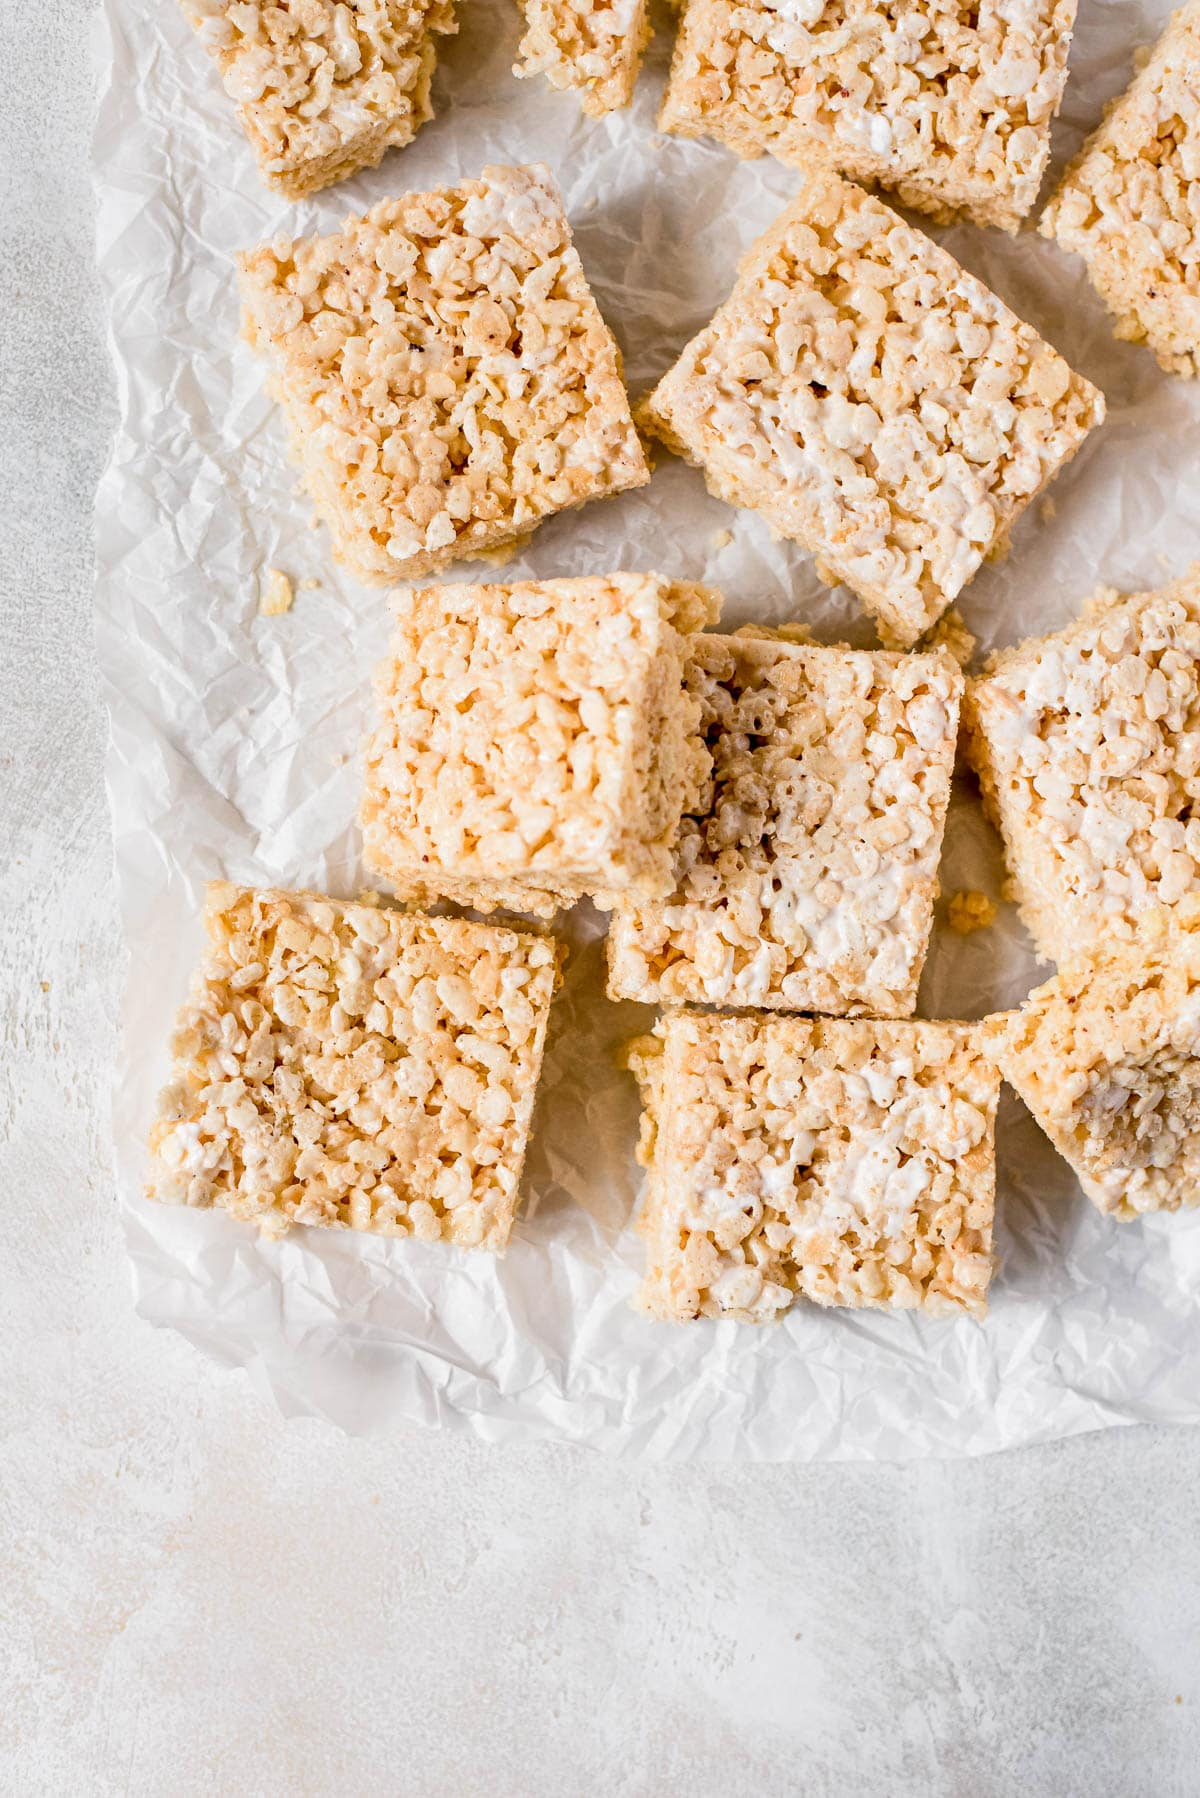 rice krispie treats scattered on parchment paper